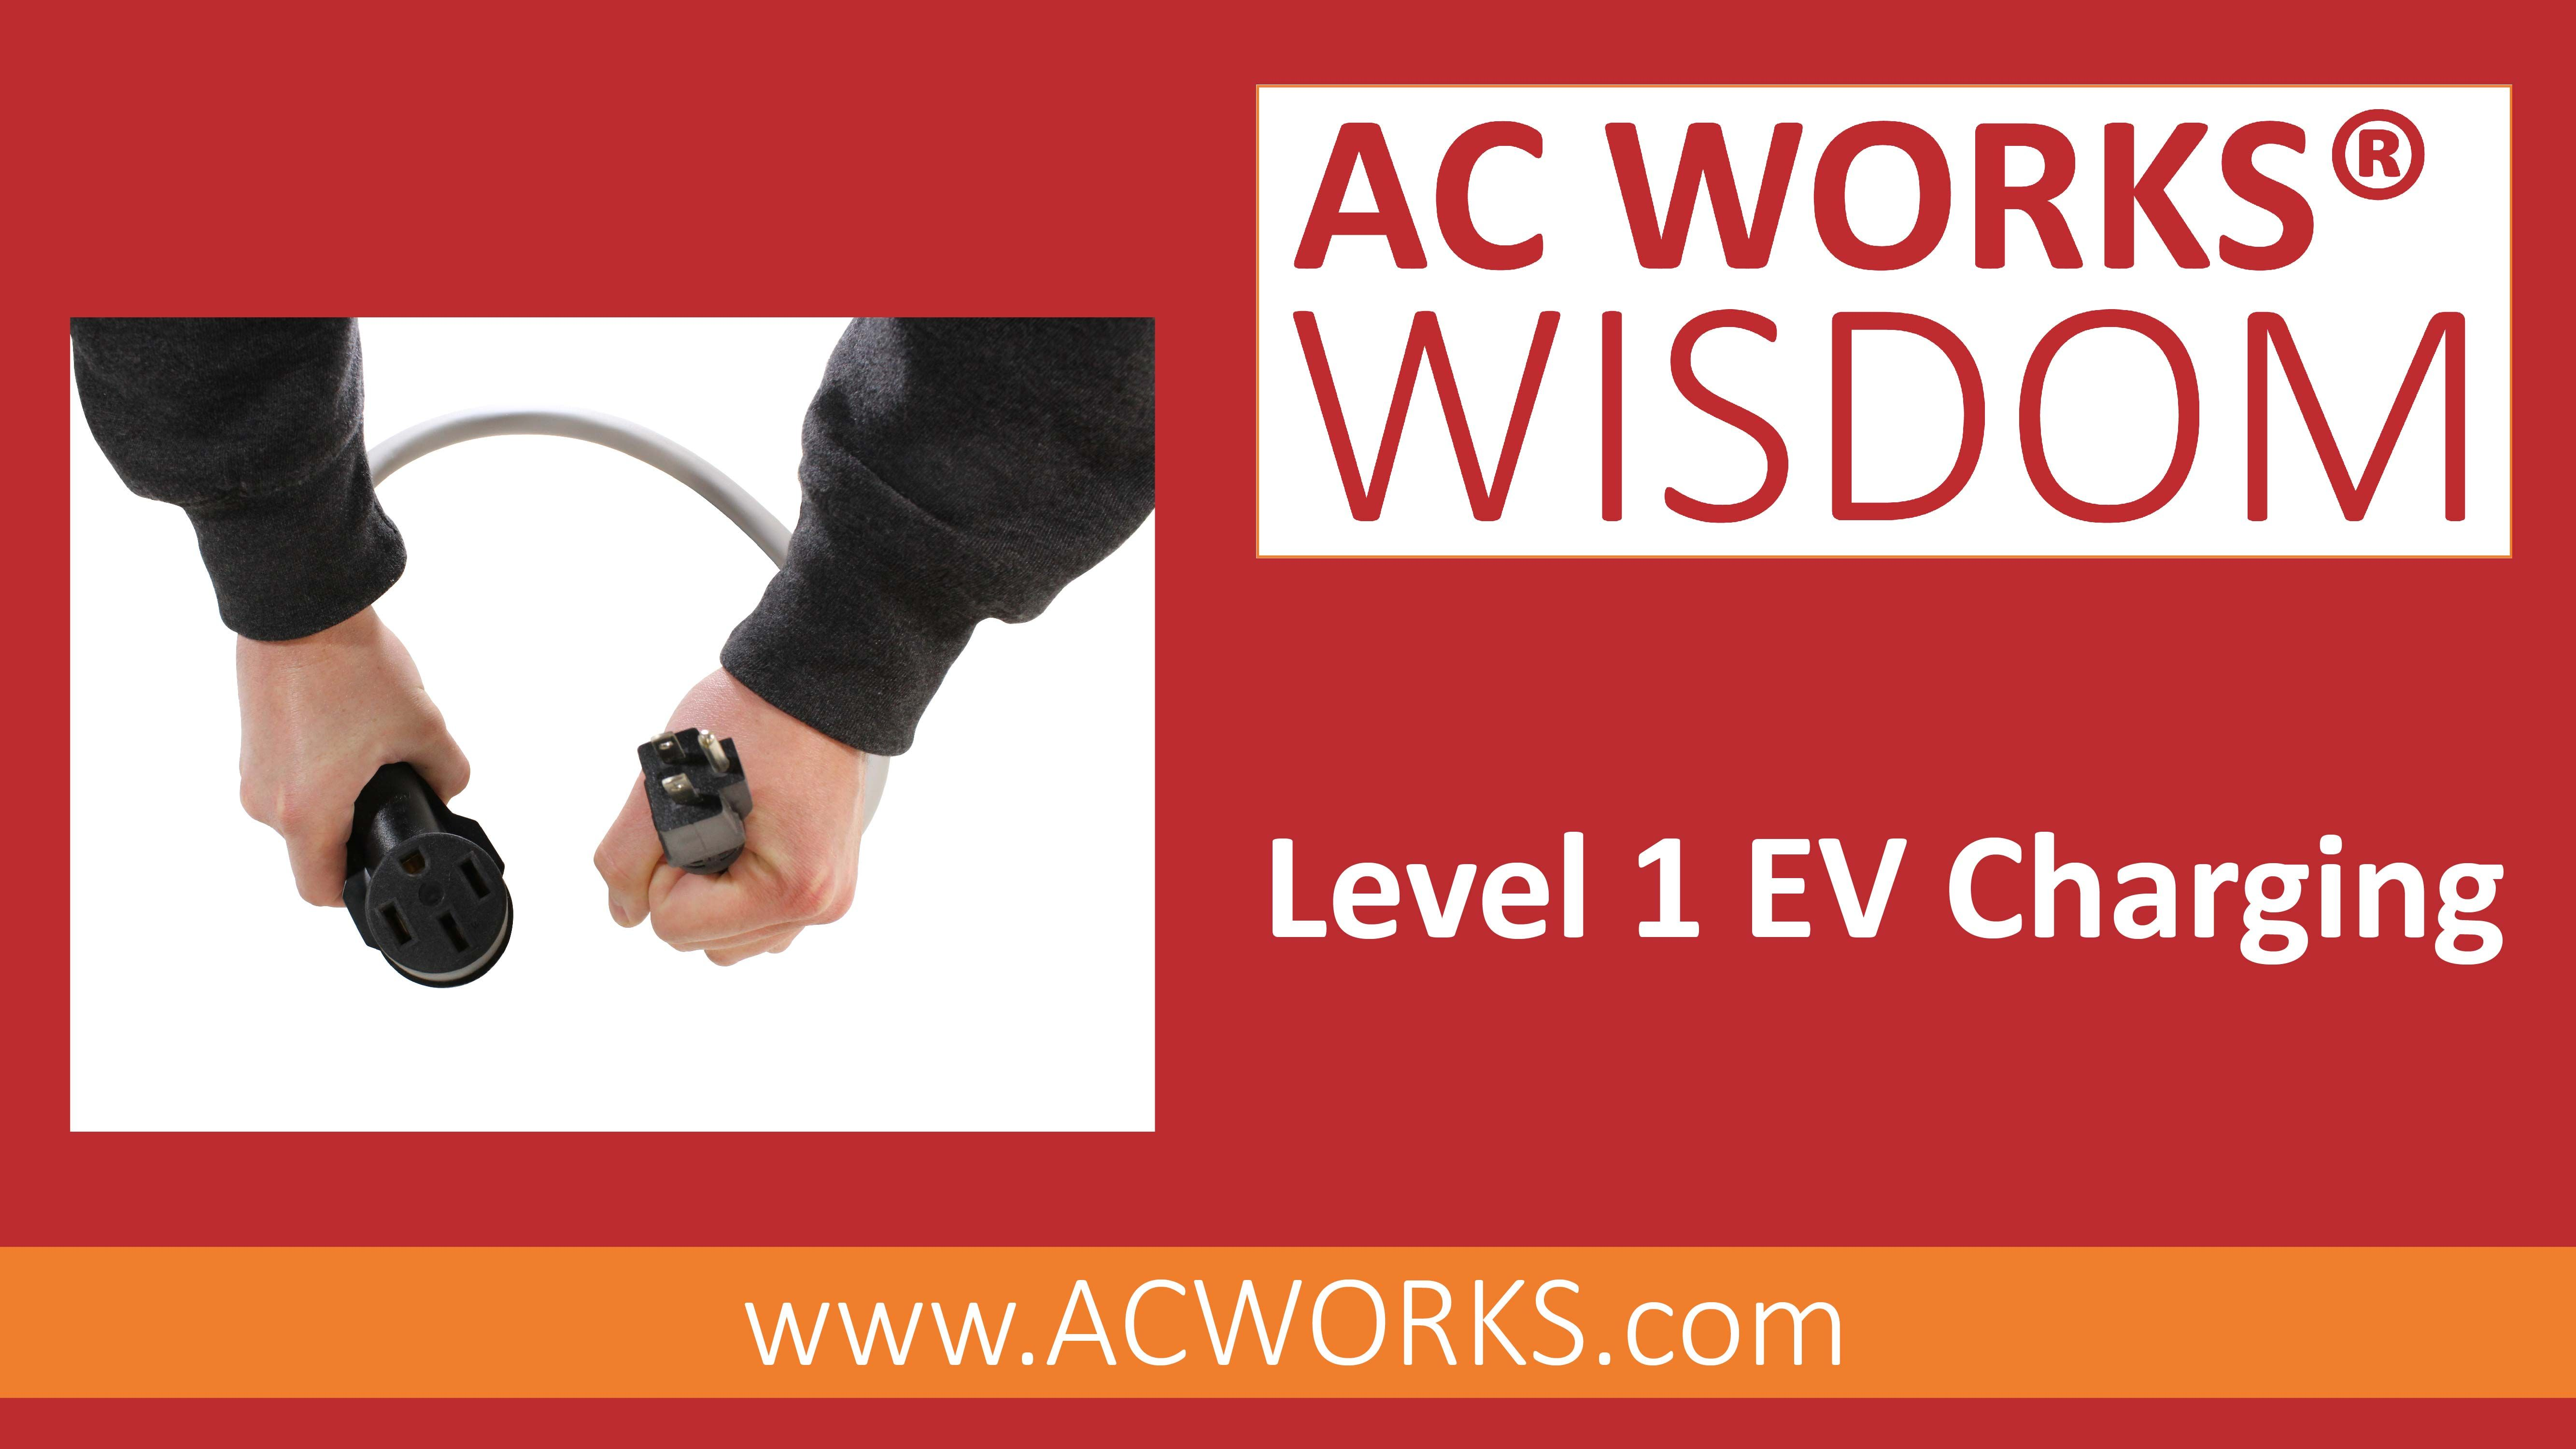 Learn how level one ac works brand products can help you